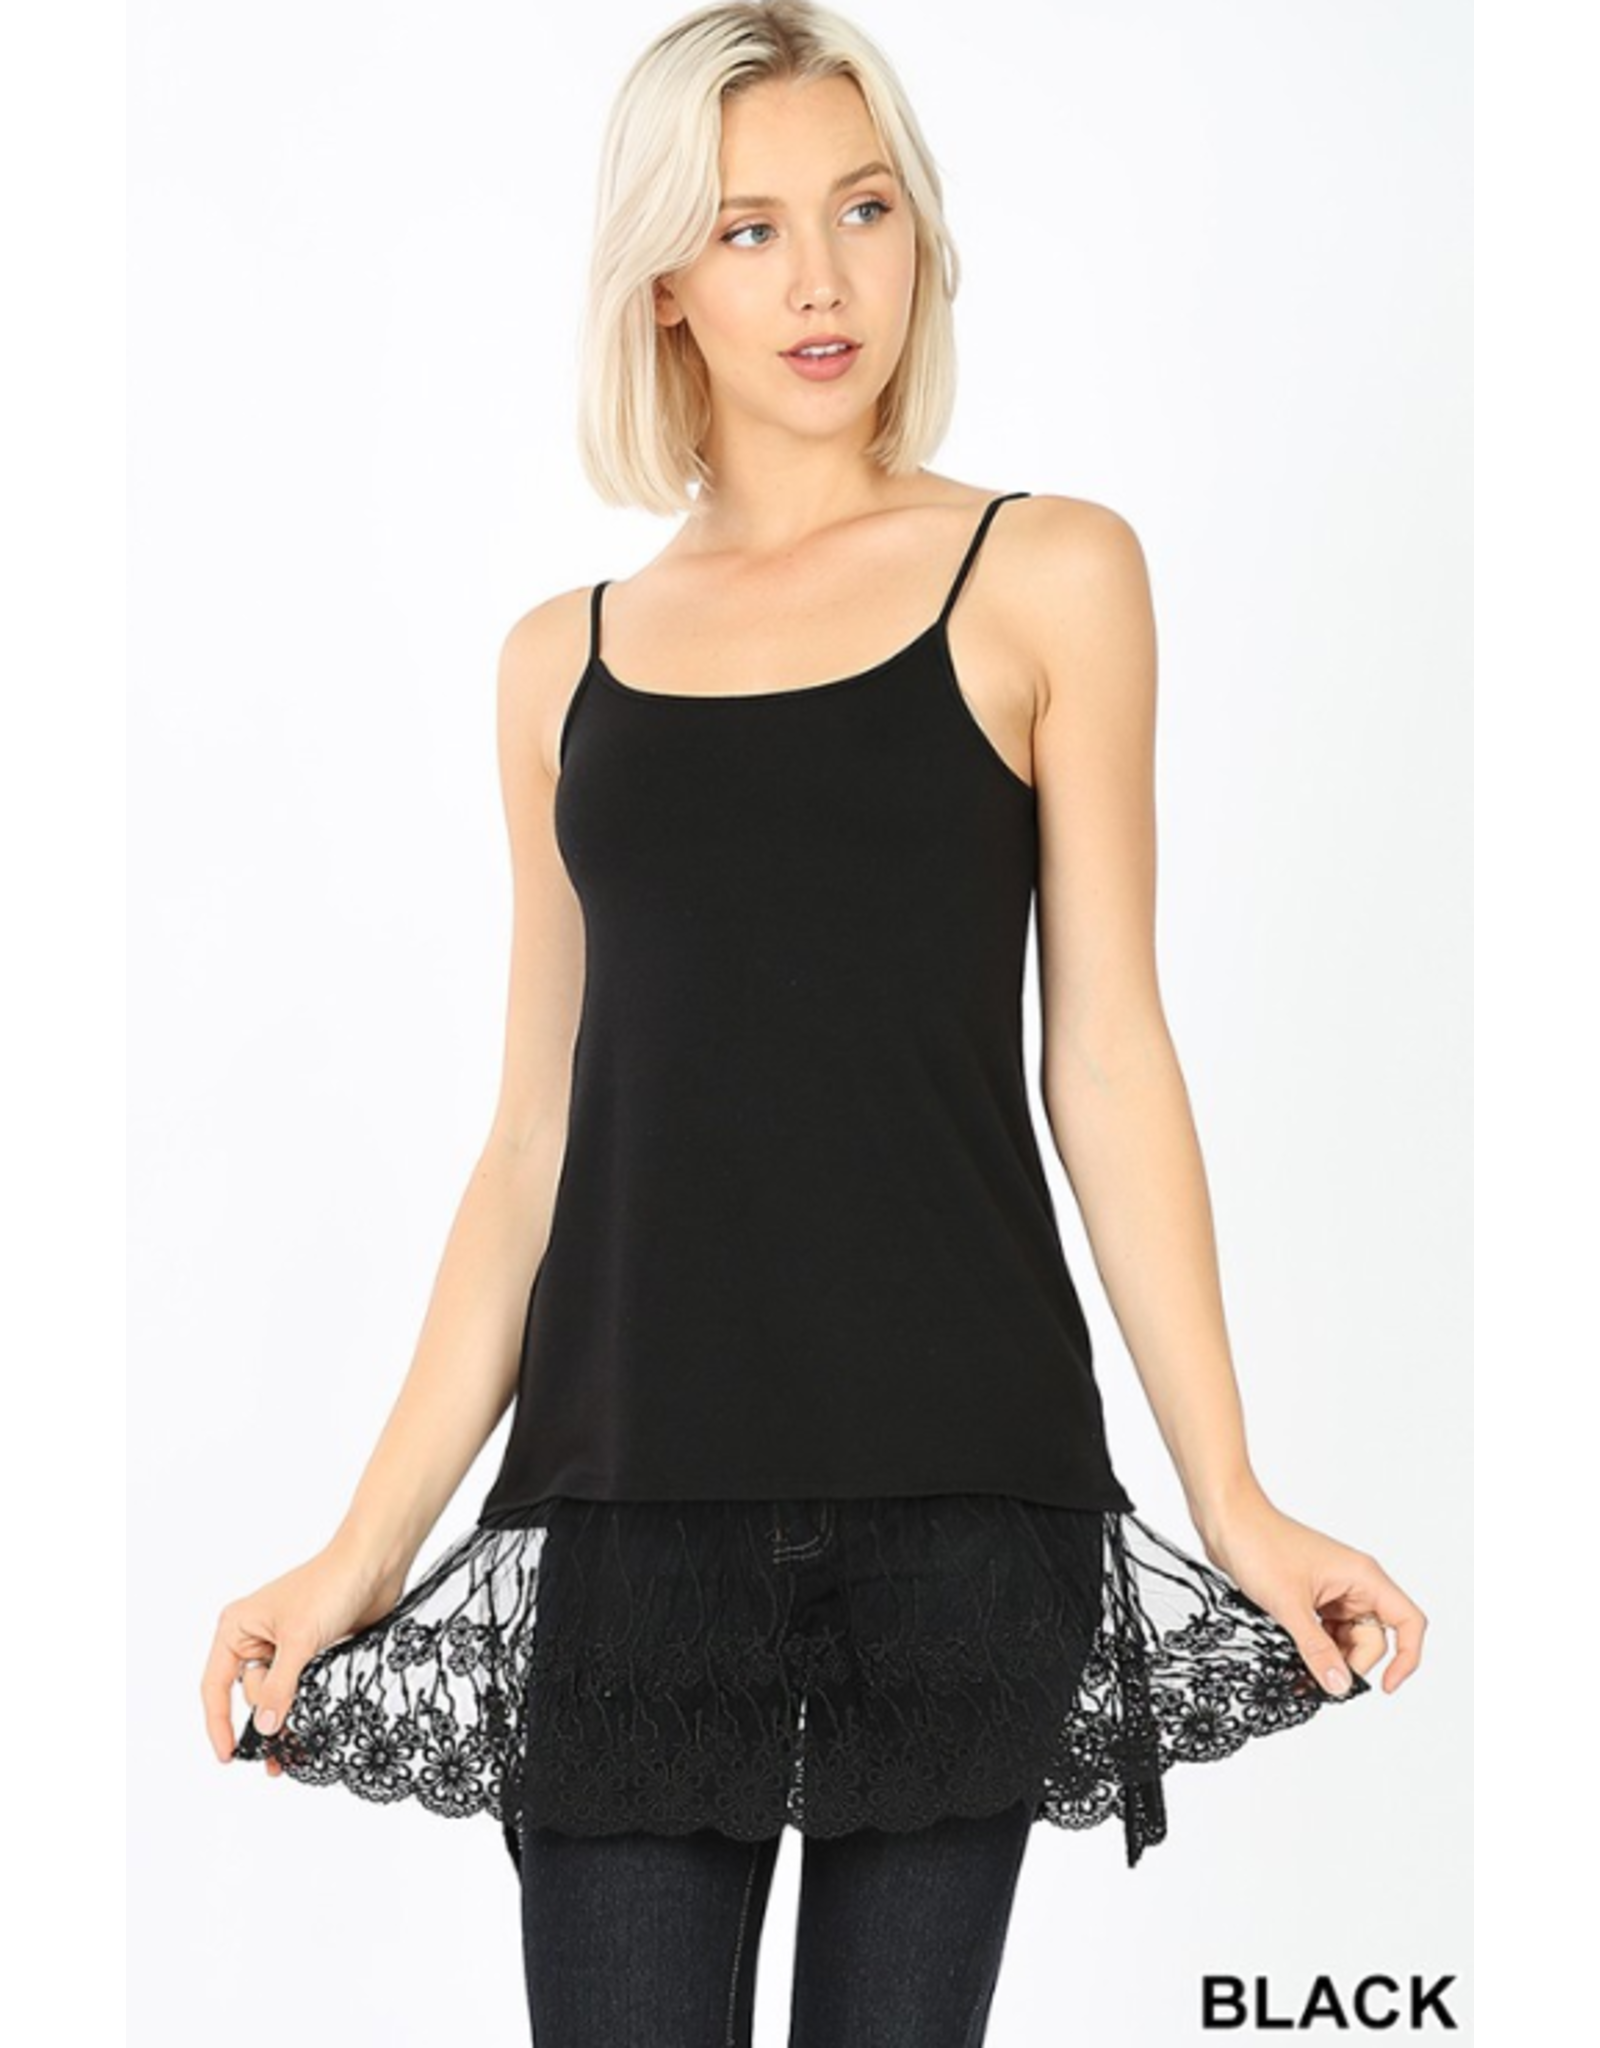 BLACK LONG LINE CAMI WITH LACE BOTTOM